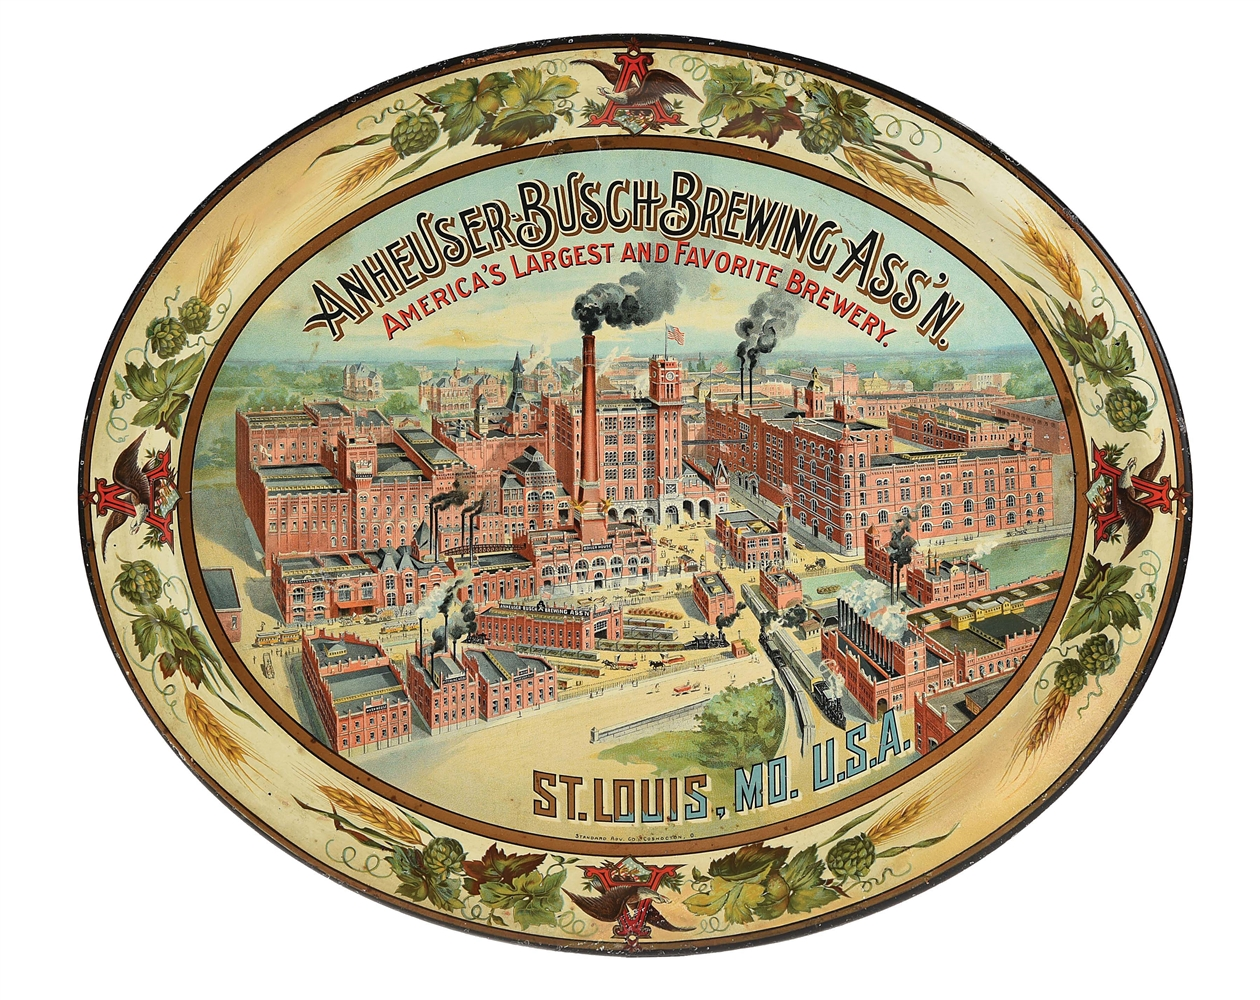 LARGE SIZE ANHEUSER-BUSCH SERVING TRAY.